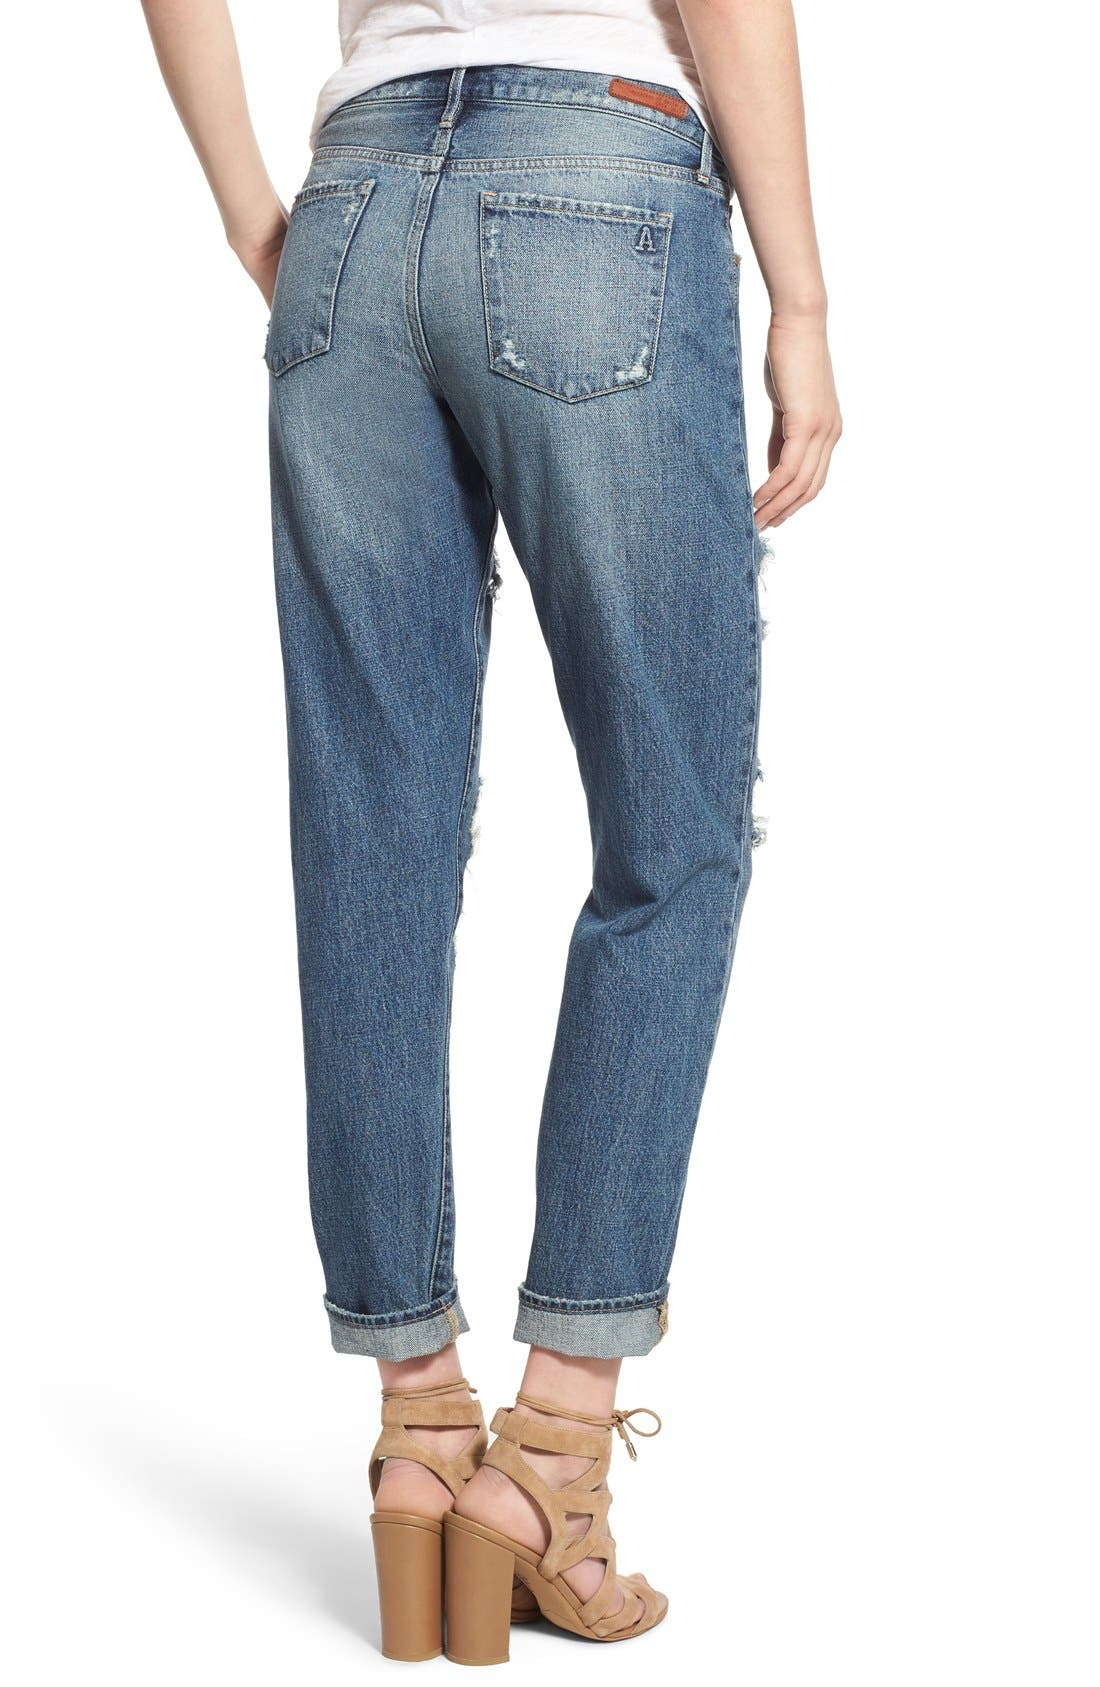 ARTICLES OF SOCIETY,                             'Janis' Destroyed Boyfriend Jeans,                             Alternate thumbnail 2, color,                             408